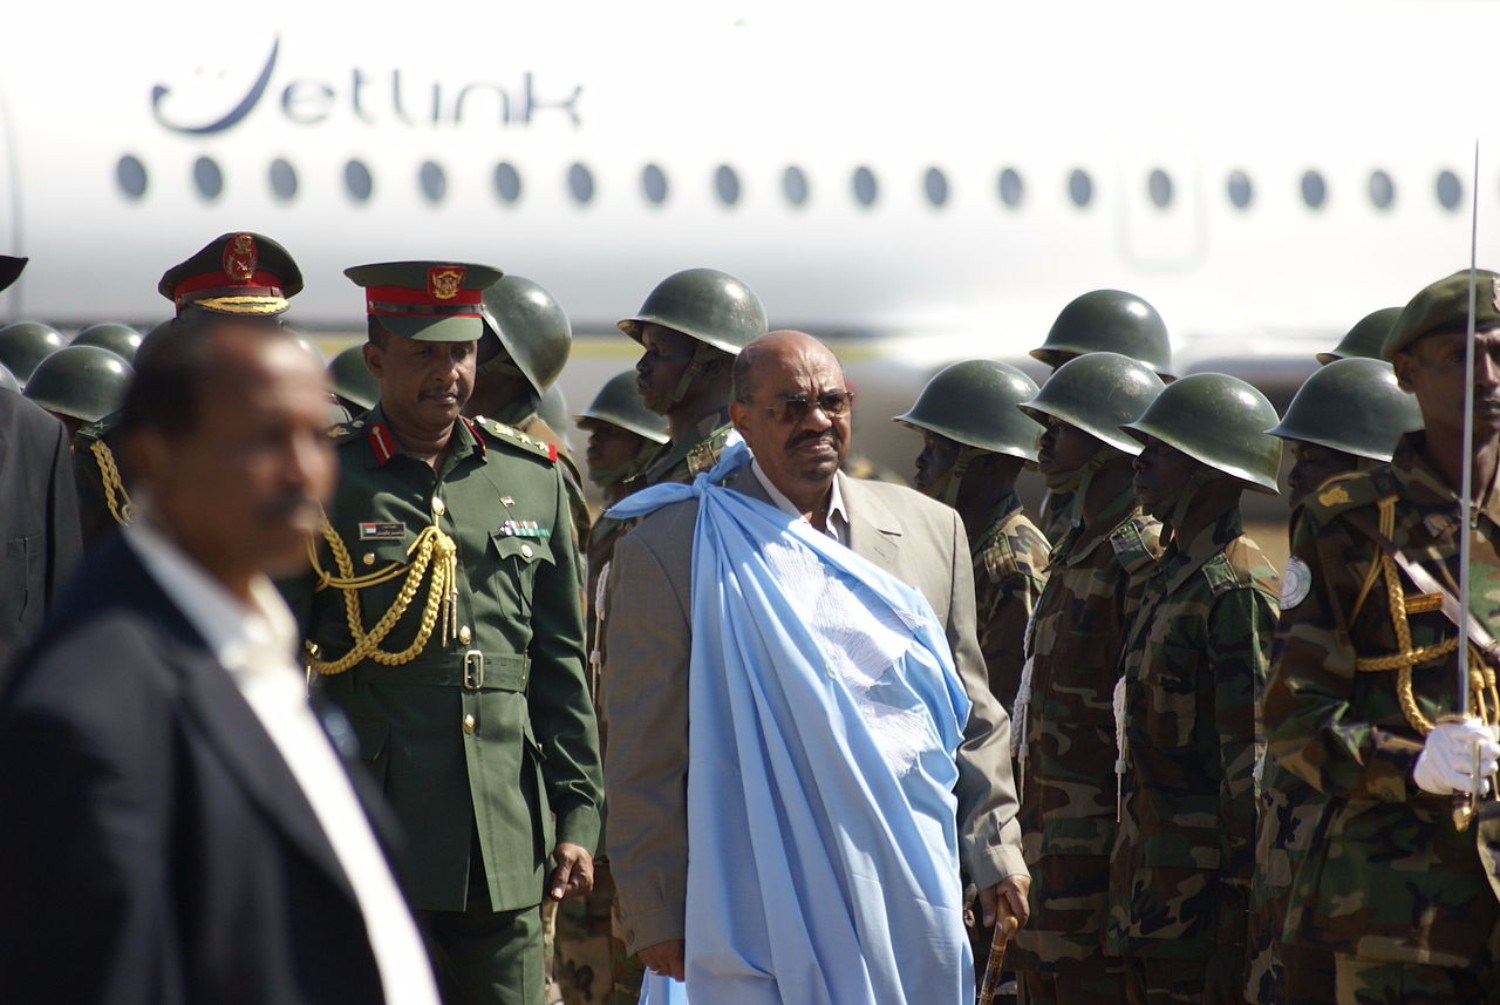 Diplomatic Tensions Are Rising Between Egypt and Sudan